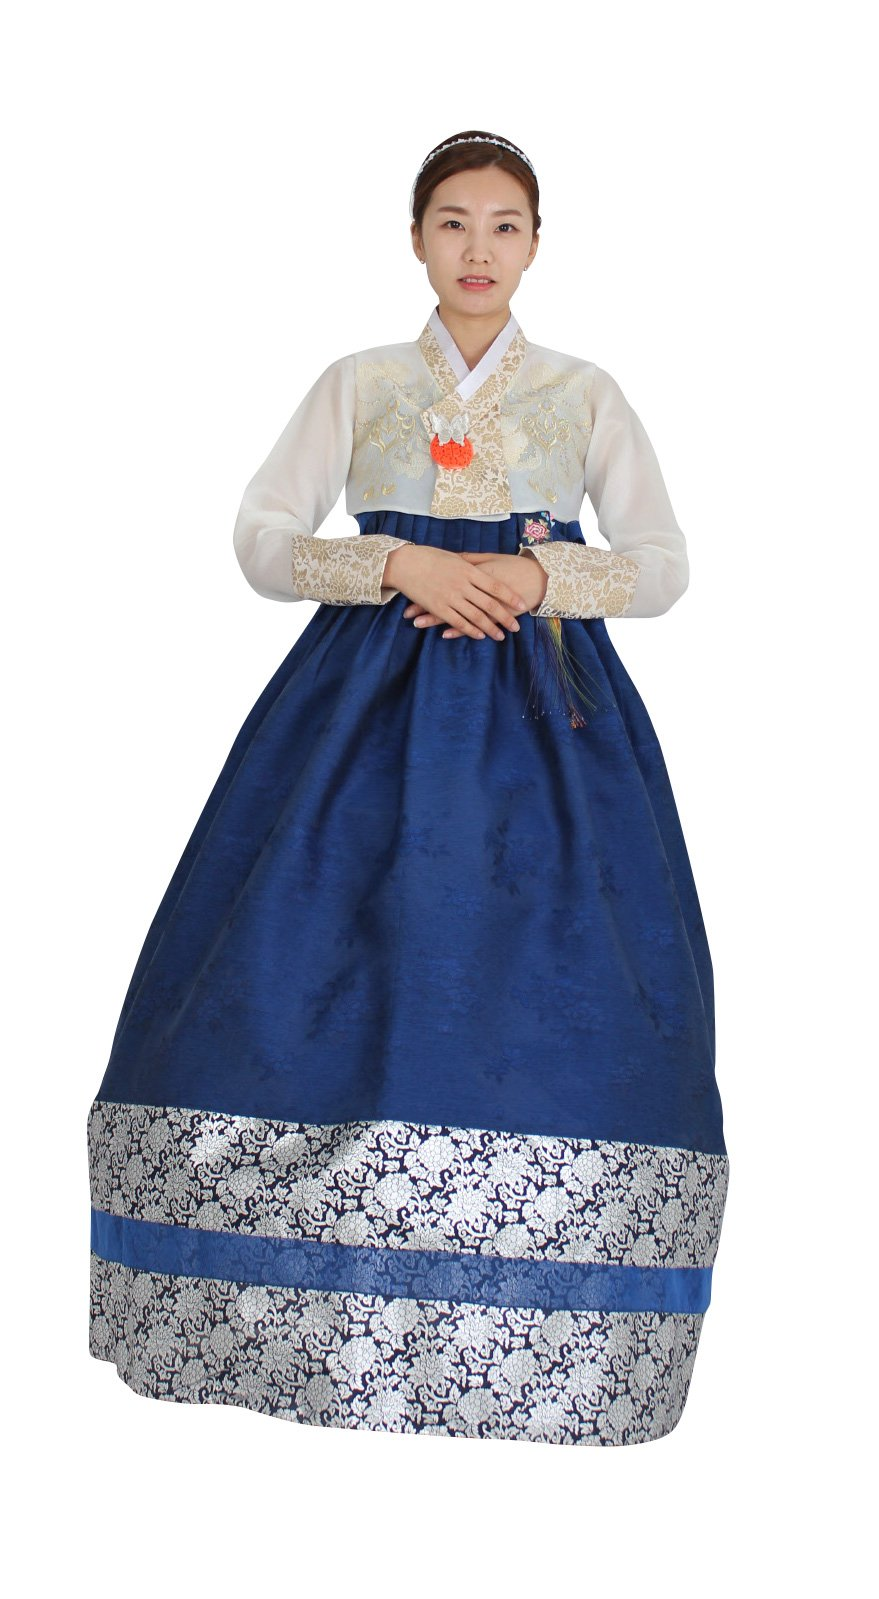 Hanbok Korea Traditional Costumes Women Junior Party Weddings Birthday Special Ceremony co113 (77 (L) womens top)